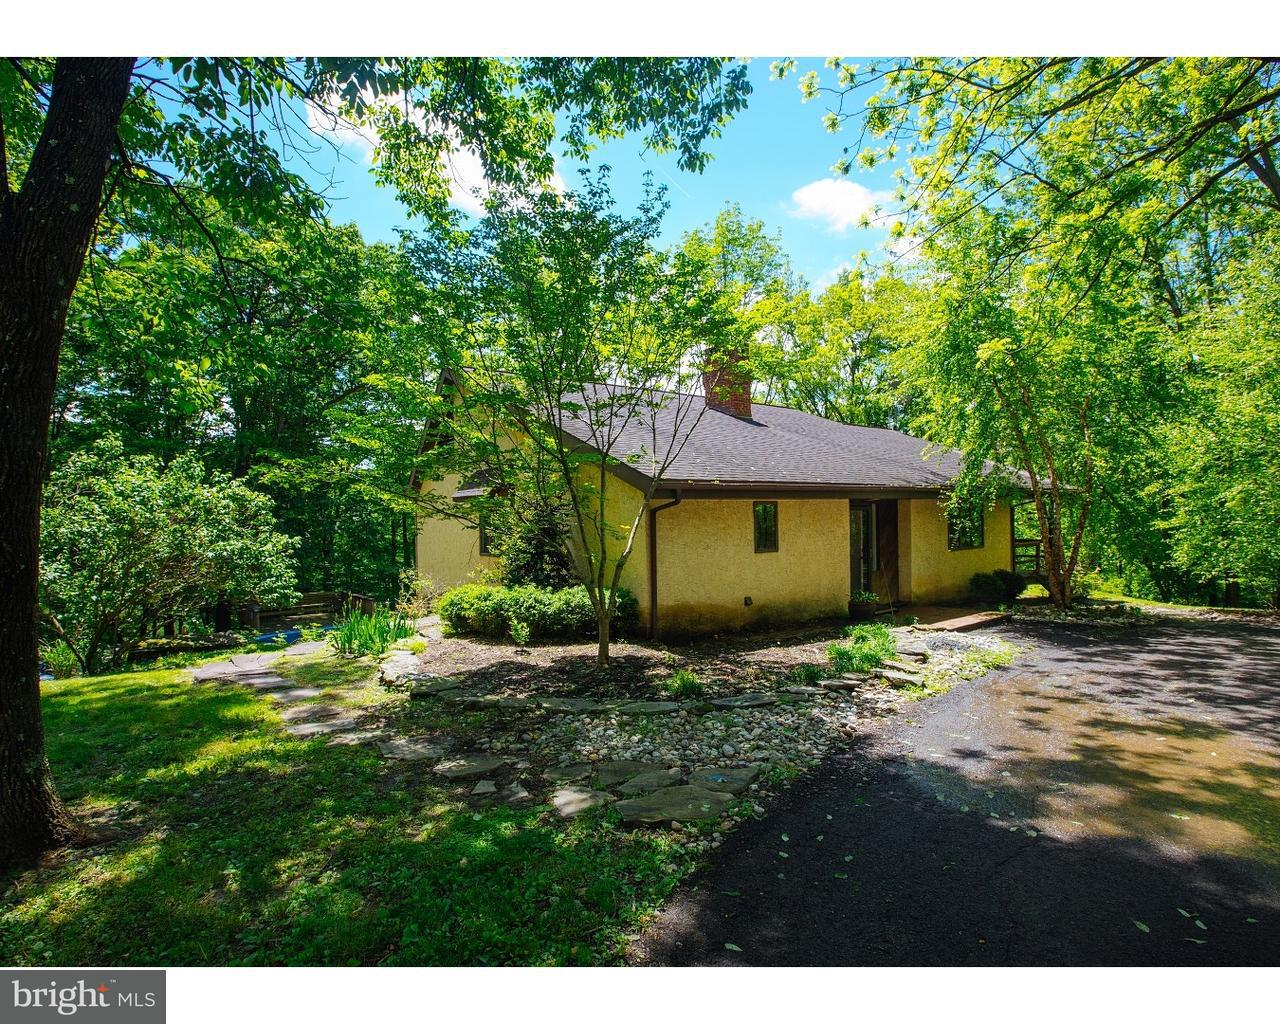 395 CENTER HILL RD, FERNDALE - Listed at $749,900, FERNDALE